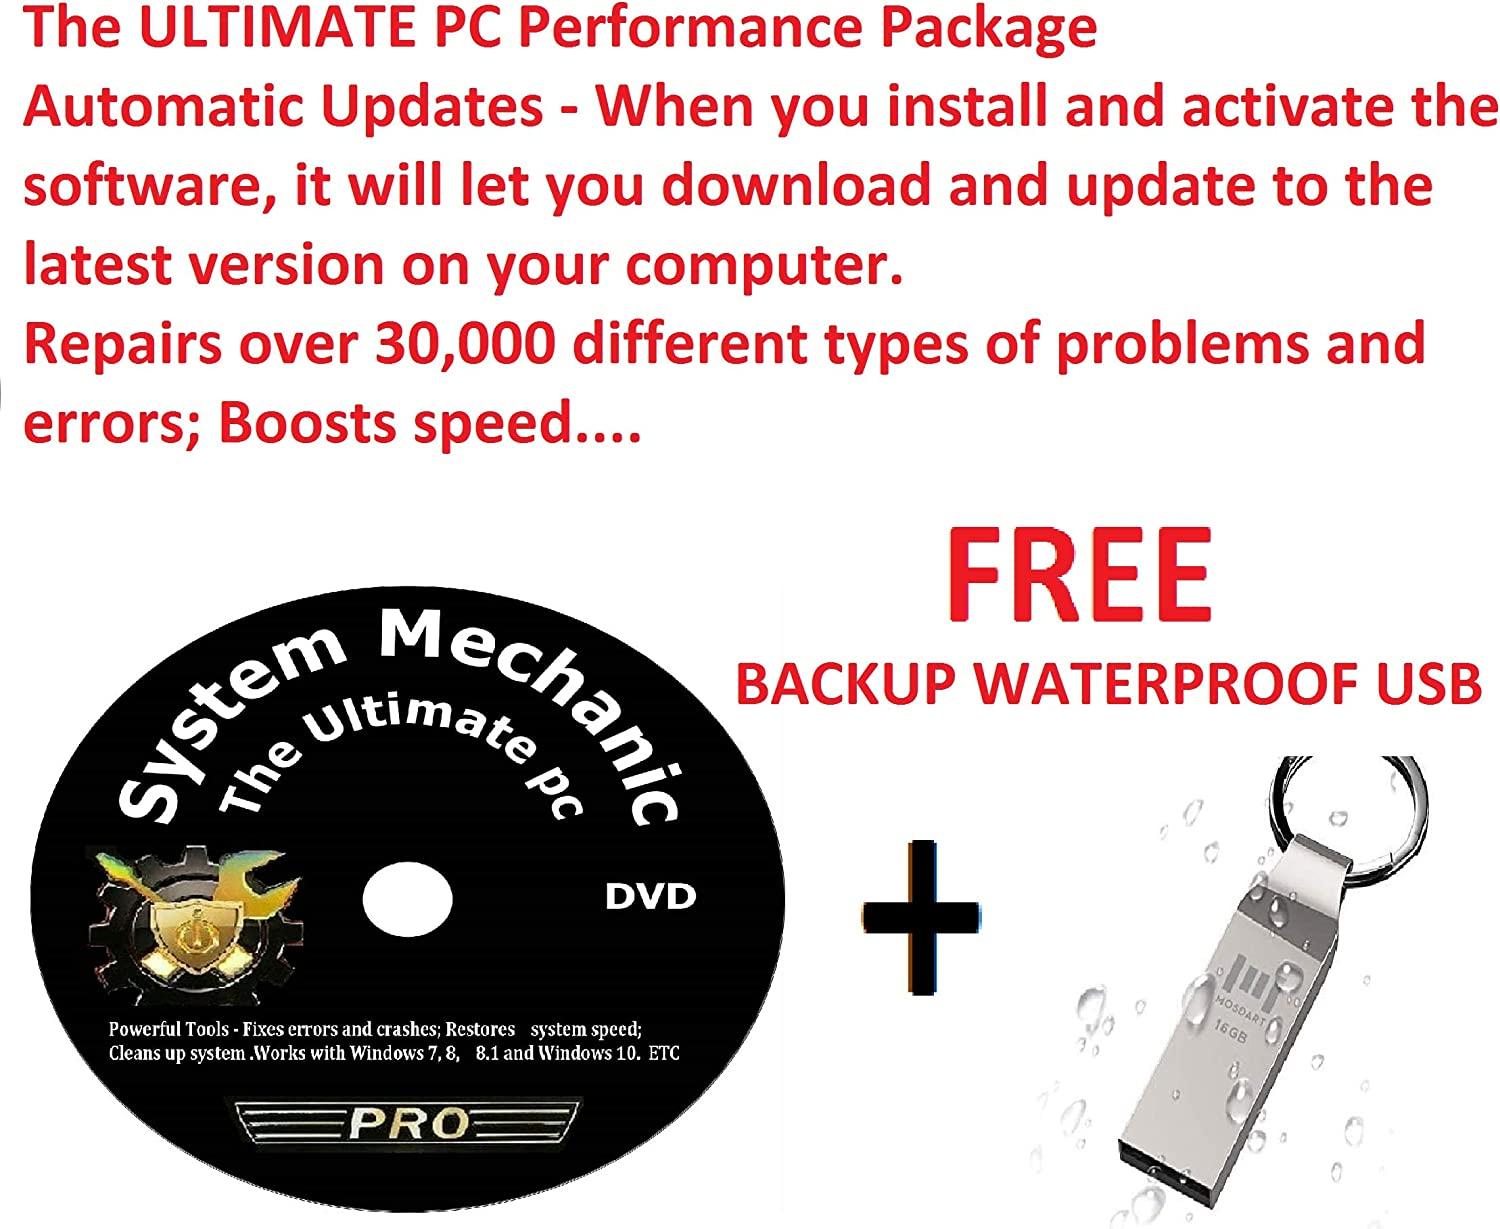 System Mechanic Professional Unlimited PCs ONE Version Same 67% OFF of fixed price day shipping 1 YEAR PC